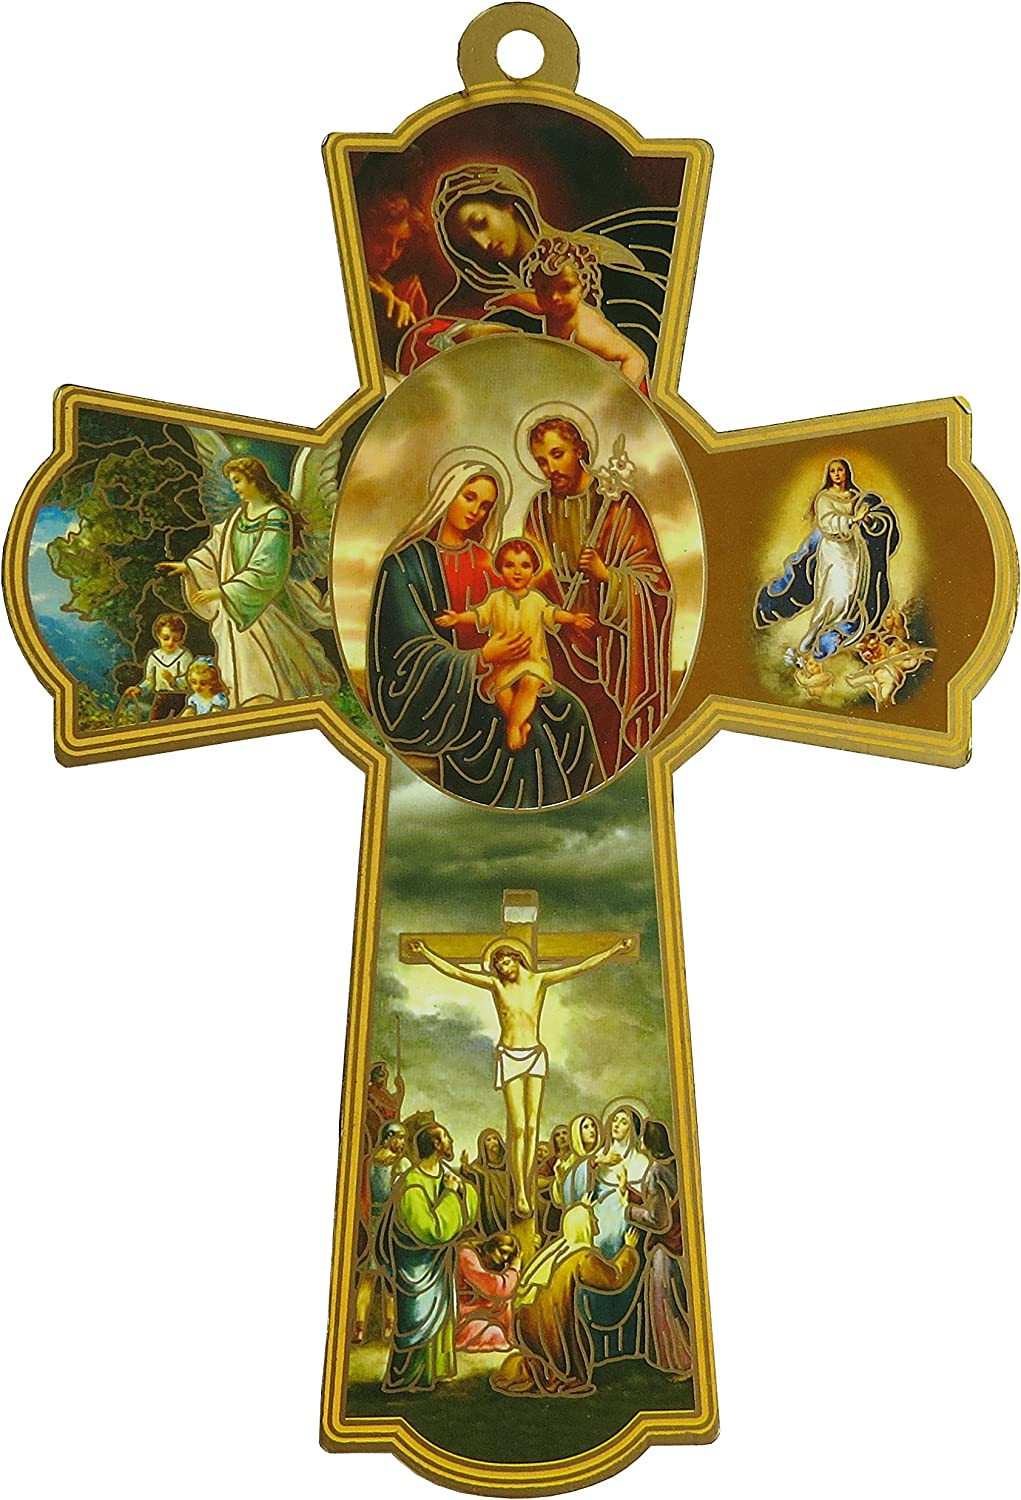 Catholic Gift Jesus Christ Lady of Guadalupe Hanging Ornament Wall Hanging Plaque Home Blessing Decor (GCCWHSF4-6)